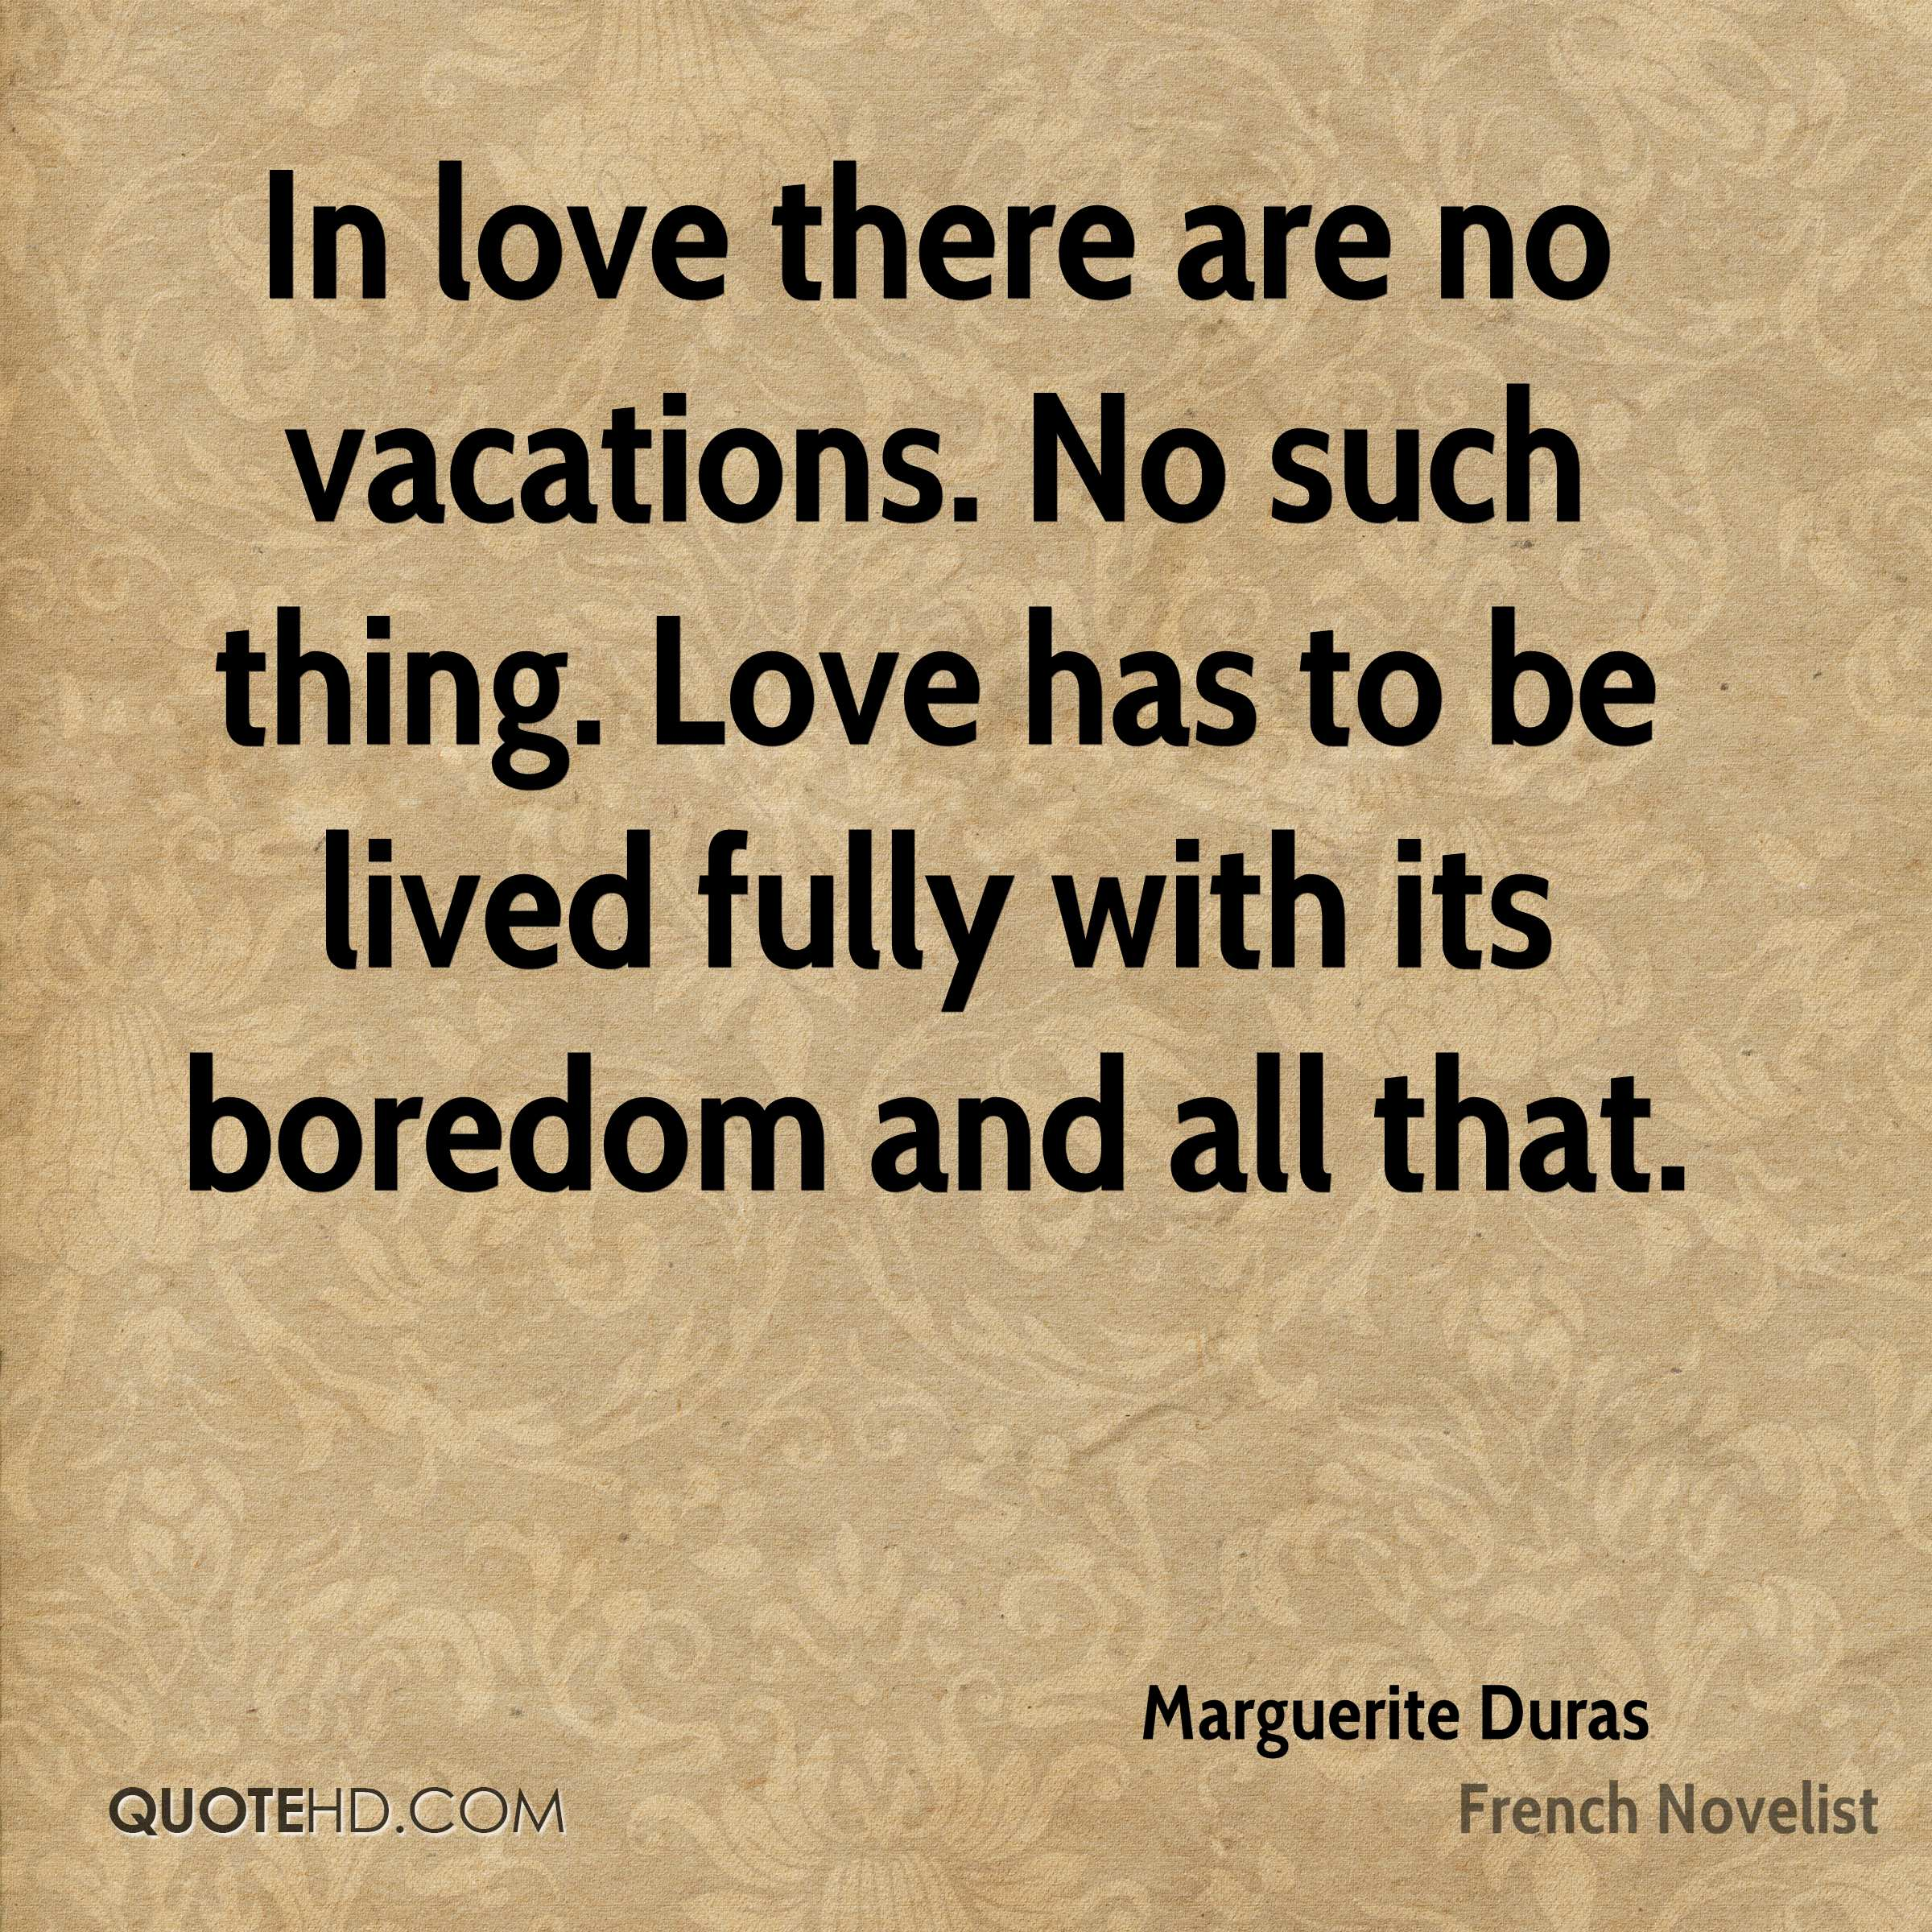 In love there are no vacations. No such thing. Love has to be lived fully with its boredom and all that.